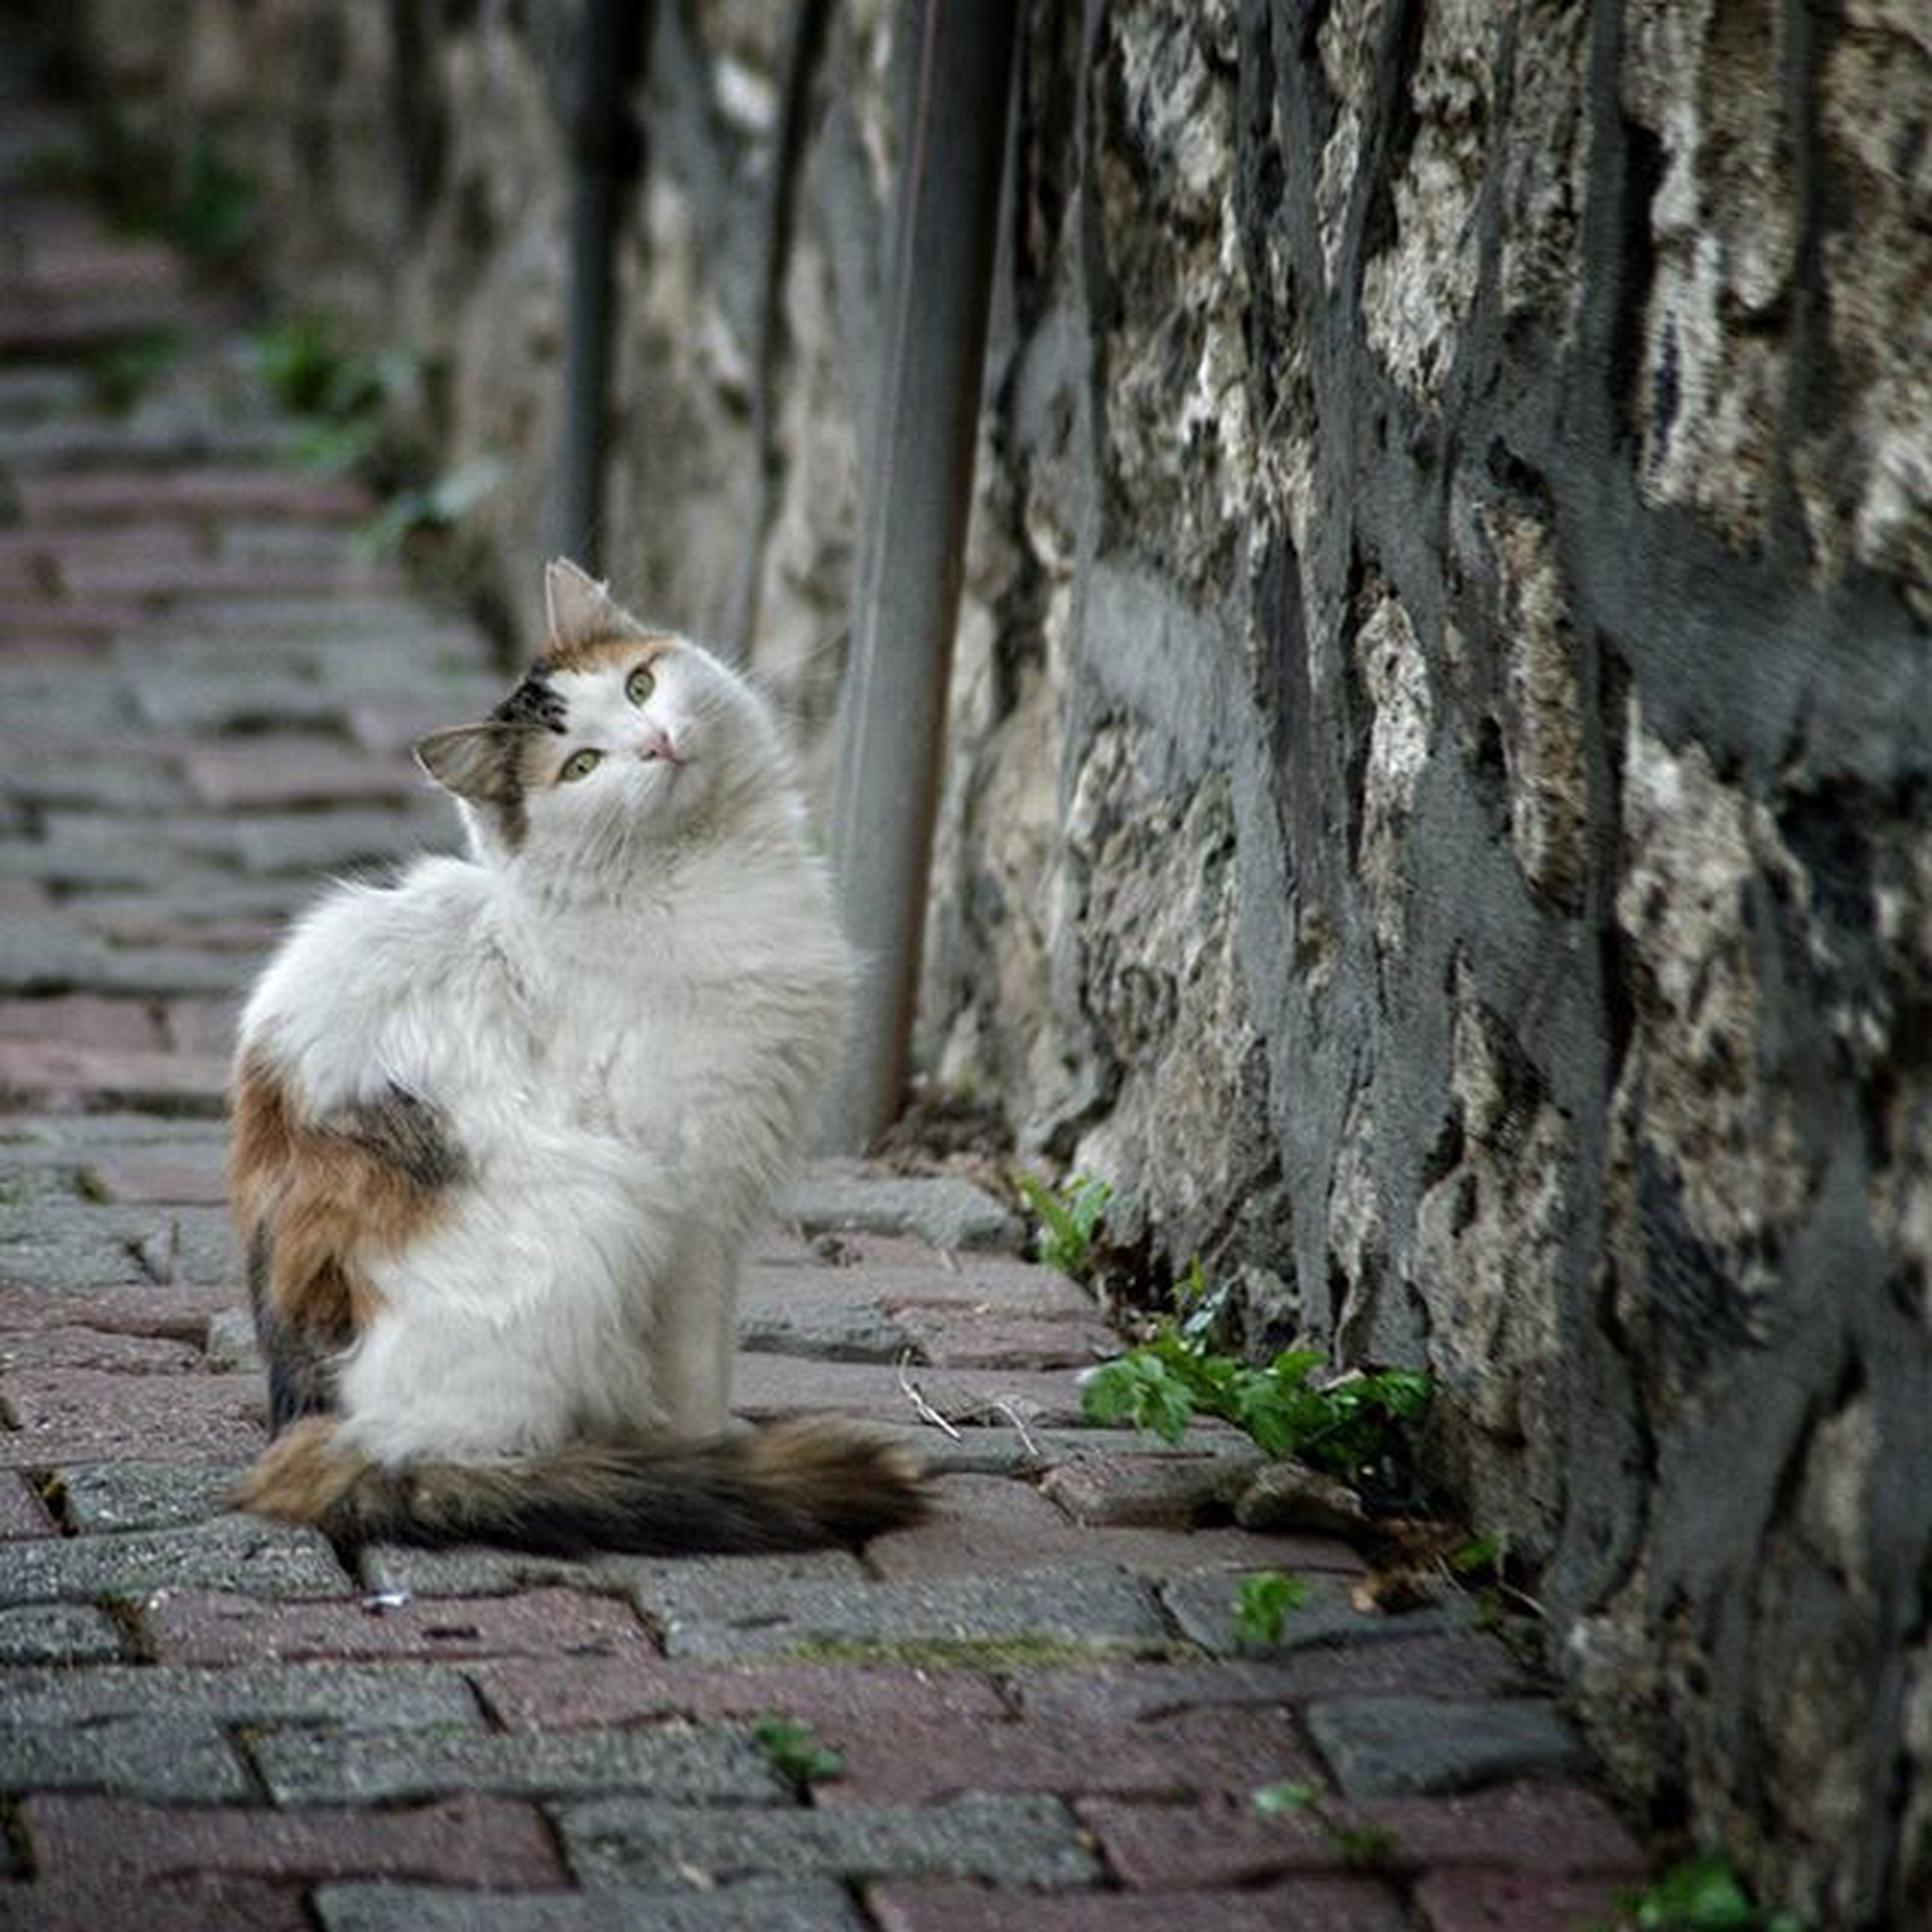 animal themes, mammal, one animal, domestic animals, focus on foreground, stone wall, sitting, pets, steps, outdoors, full length, wildlife, cat, footpath, day, domestic cat, rock - object, no people, relaxation, nature